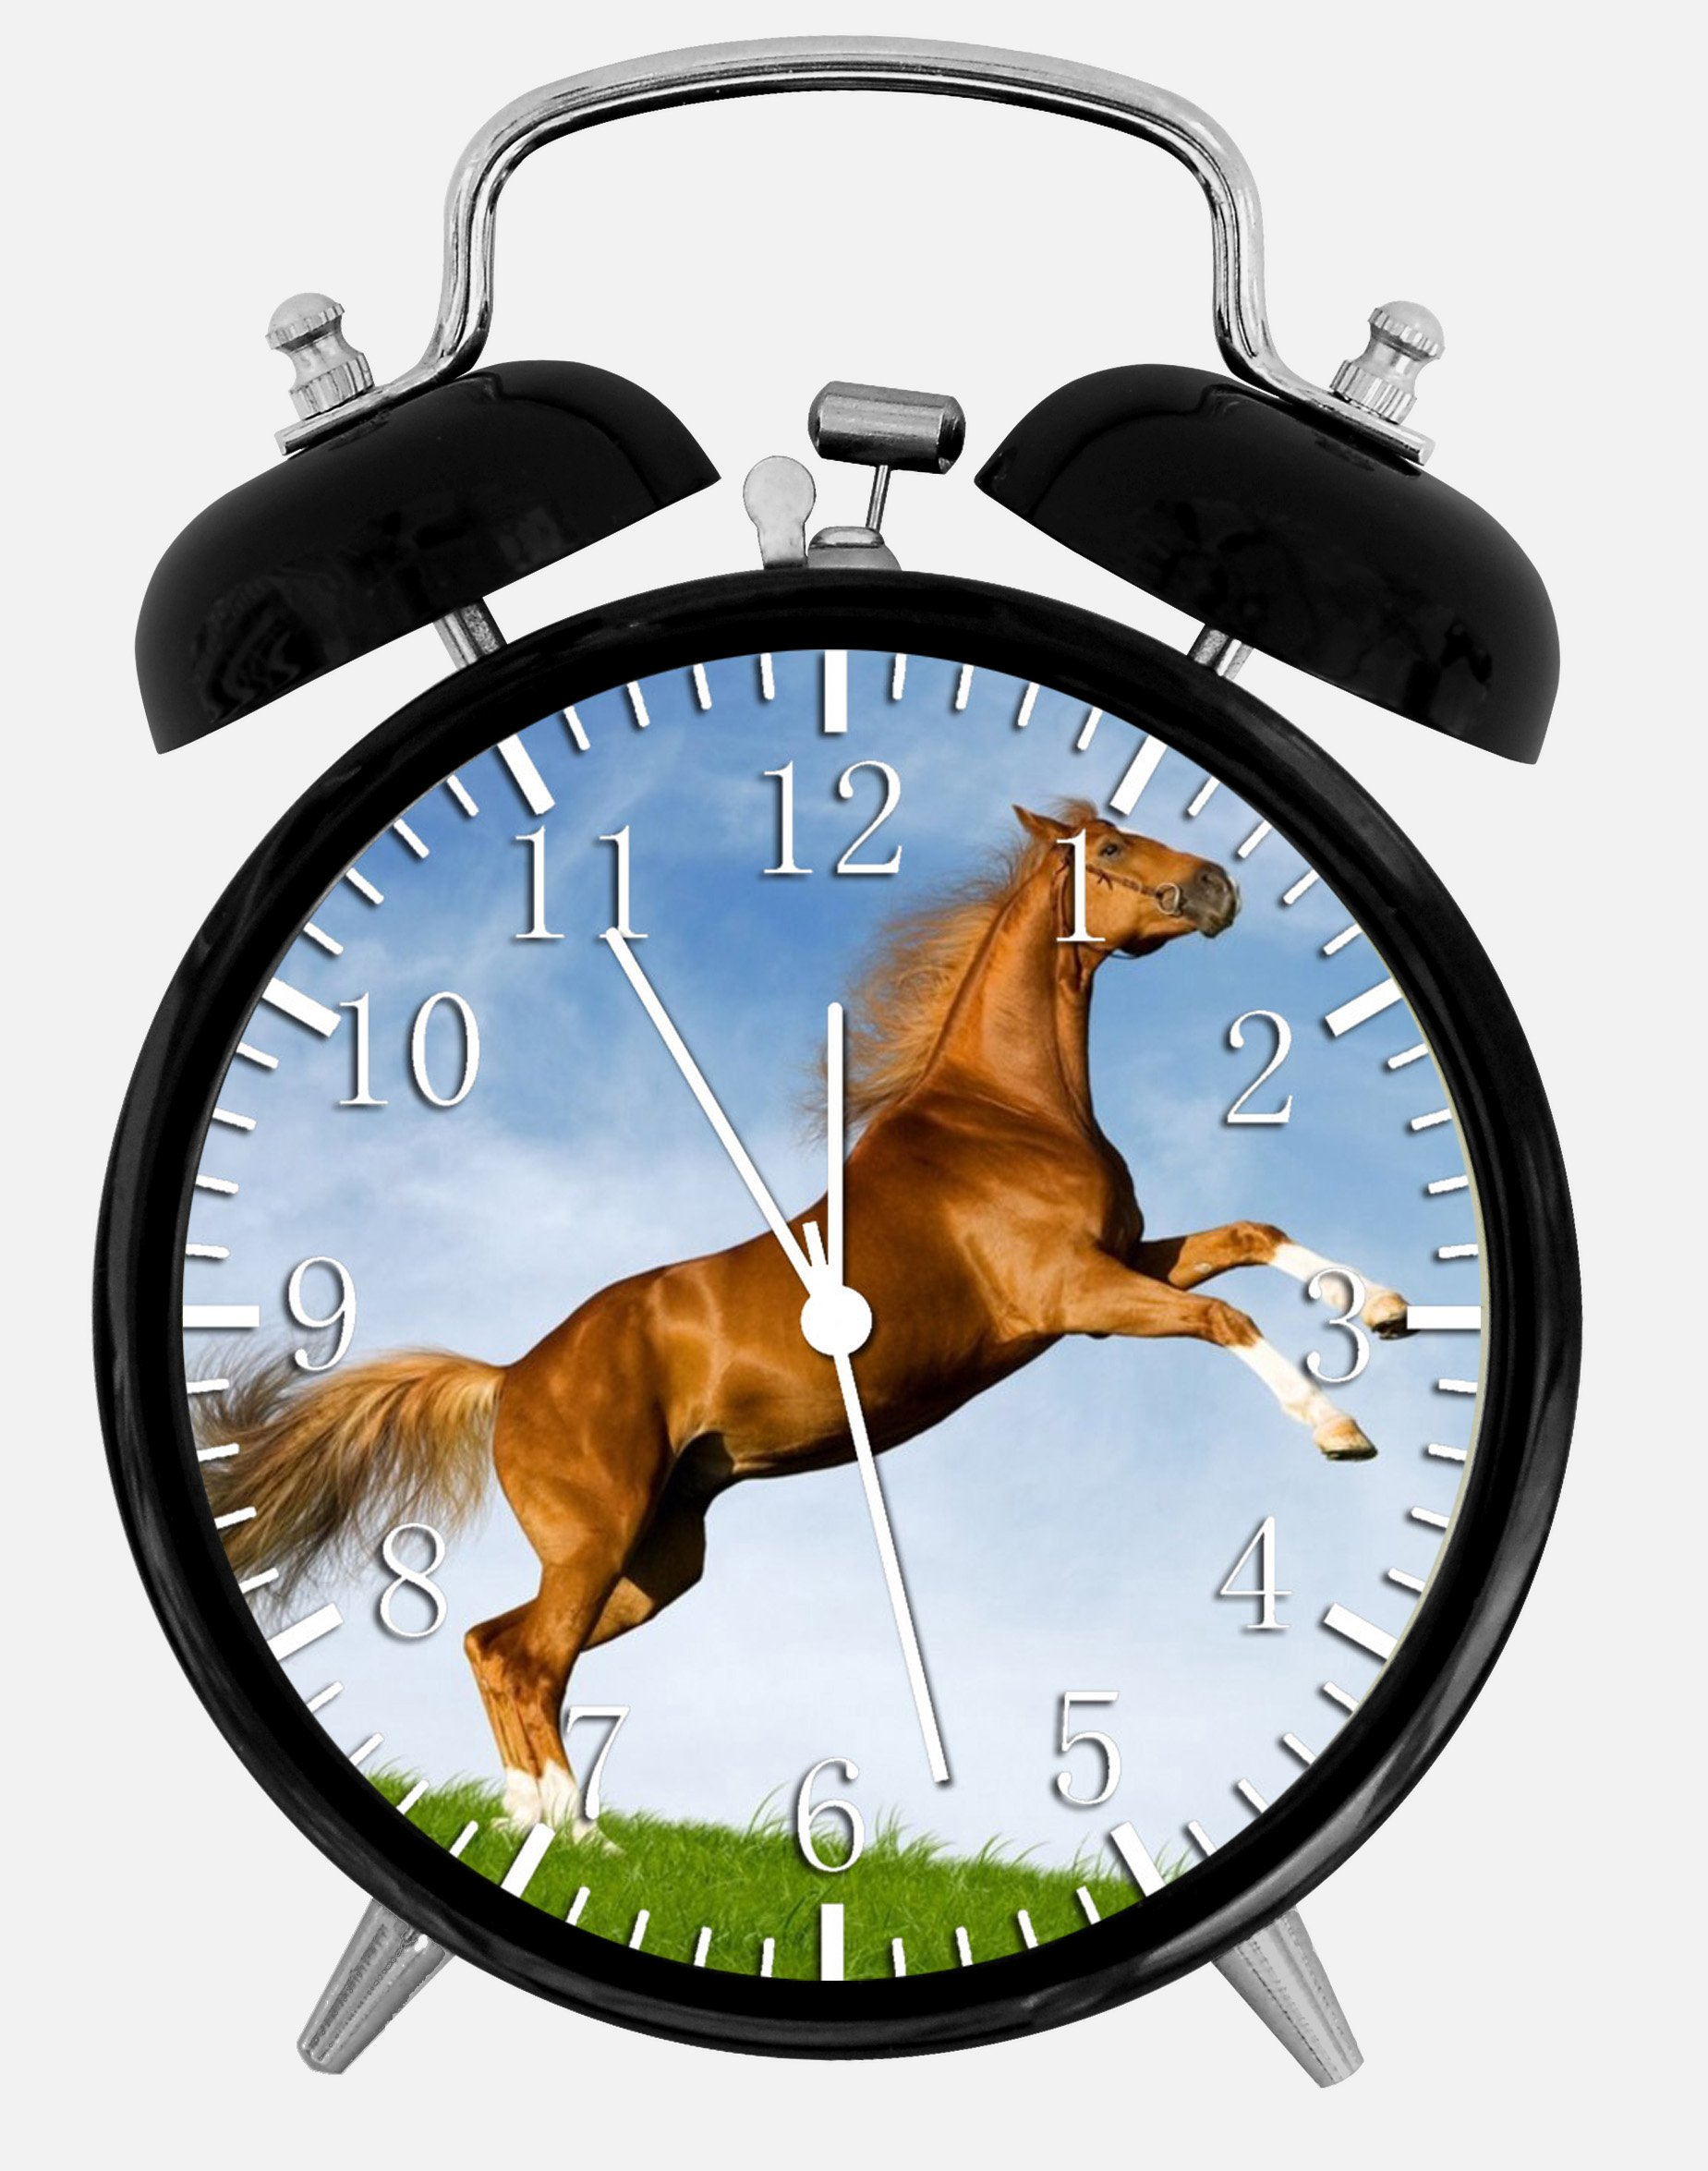 Beautiful Horse Alarm Desk Clock 3.75'' Home Office Decor Y93 Nice For Gifts